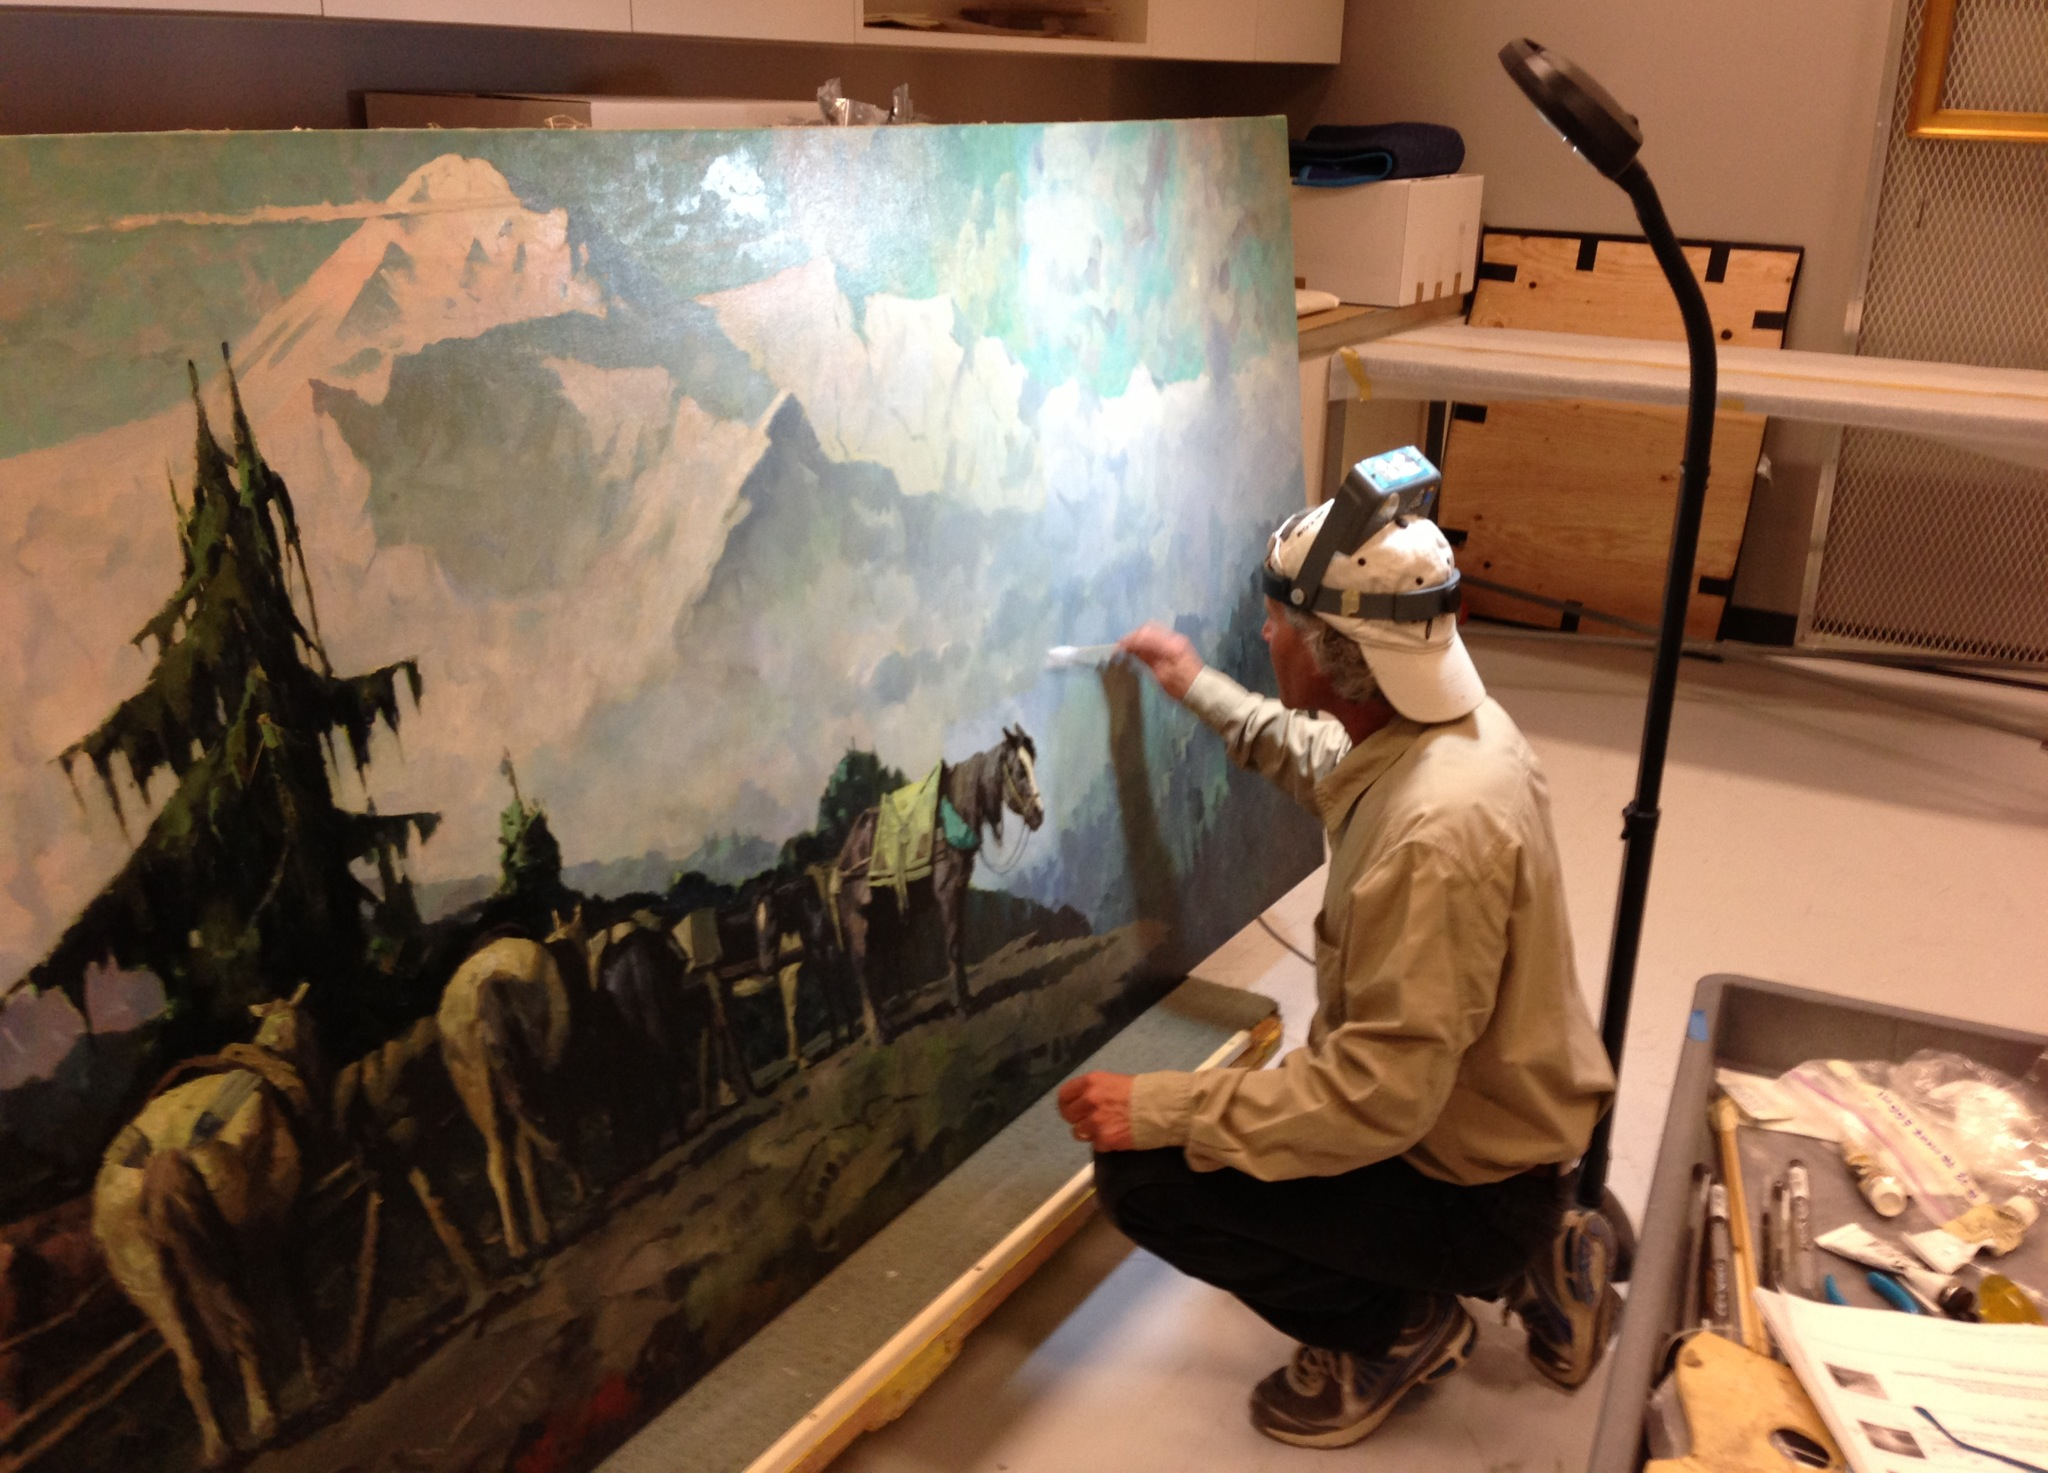 Color art anchorage - Atwood Foundation Donates Art To Anchorage Museum